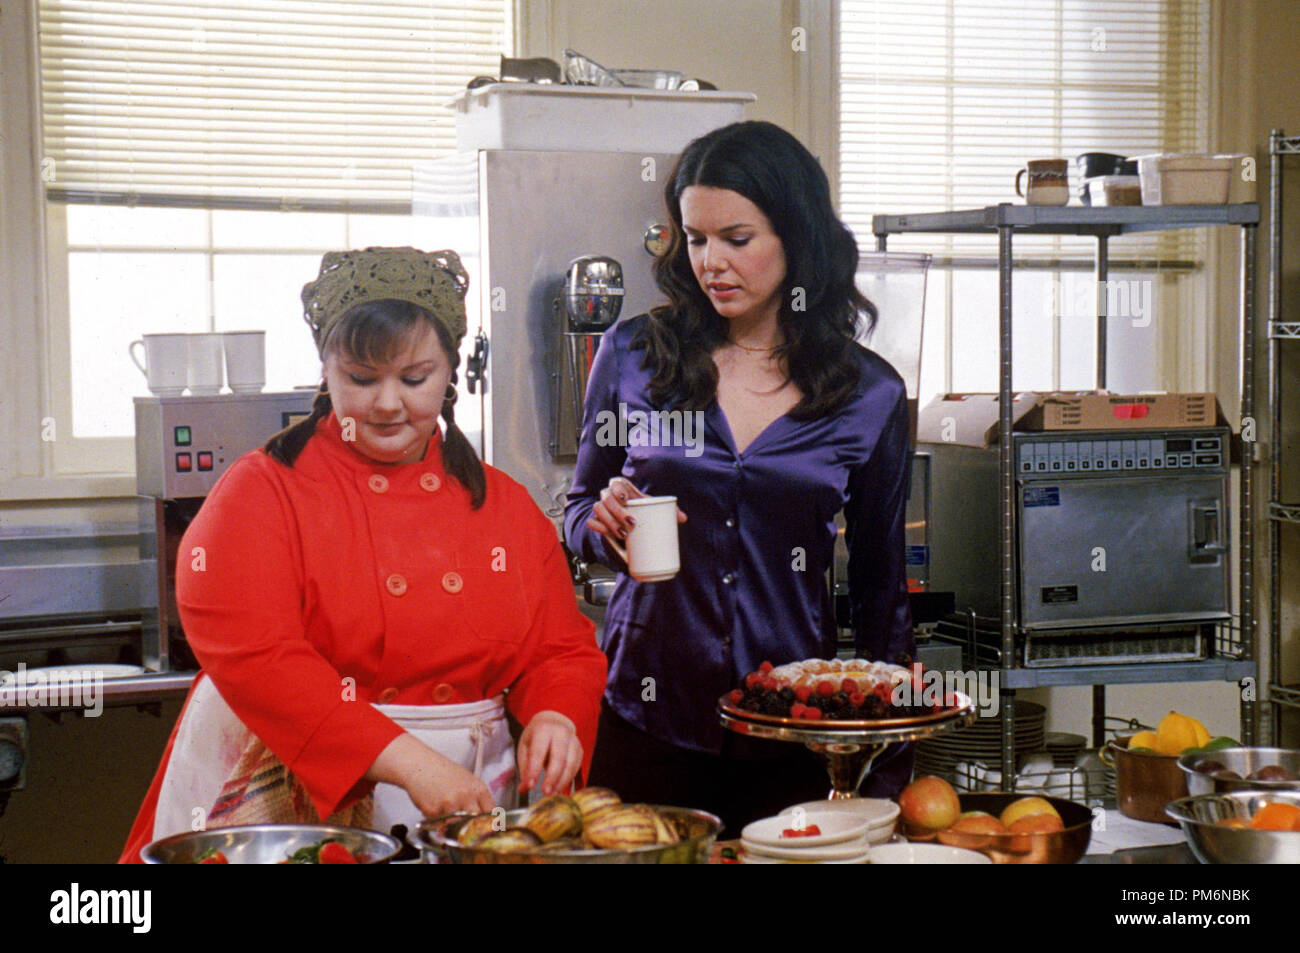 Film Still / Publicity Still from 'Gilmore Girls' (Episode: That Damn Donna Reed) Melissa McCarthy, Lauren Graham 2001 Photo credit: Richard Cartwright     File Reference # 30847970THA  For Editorial Use Only -  All Rights Reserved - Stock Image